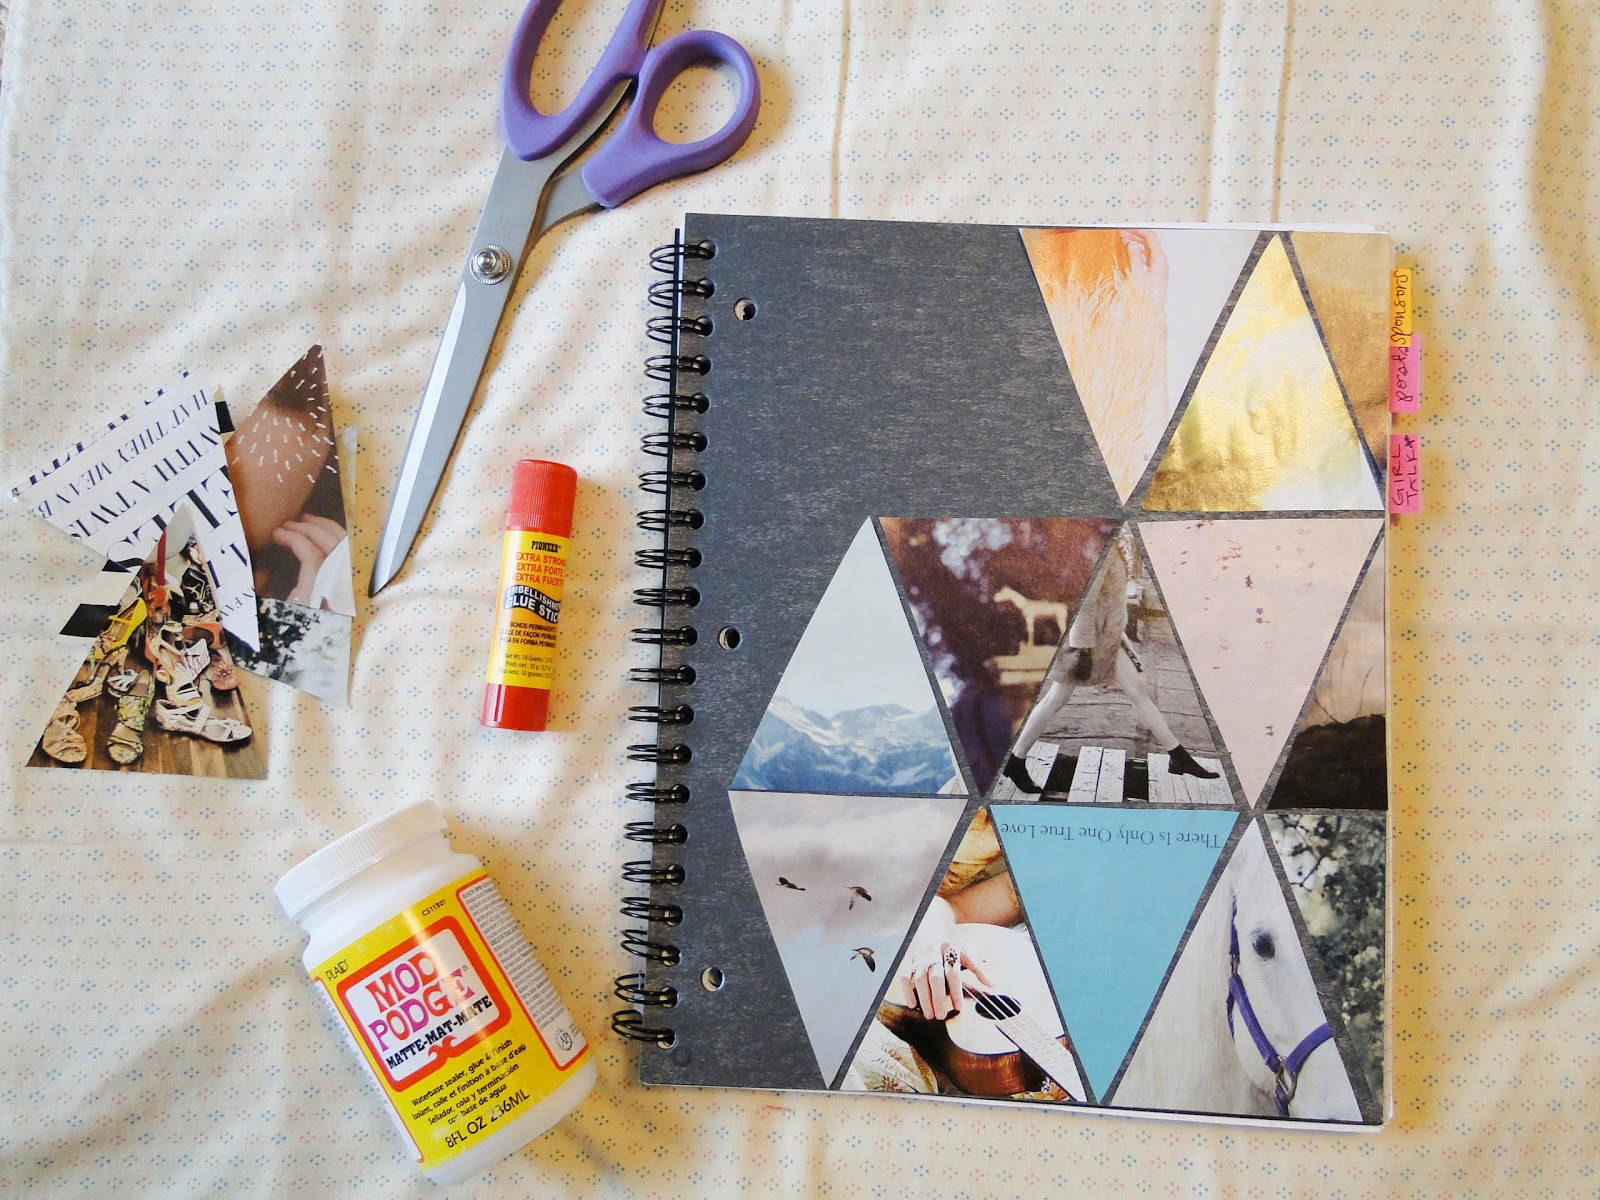 Homemade Book Cover Design : Pie n the sky triangle love diy